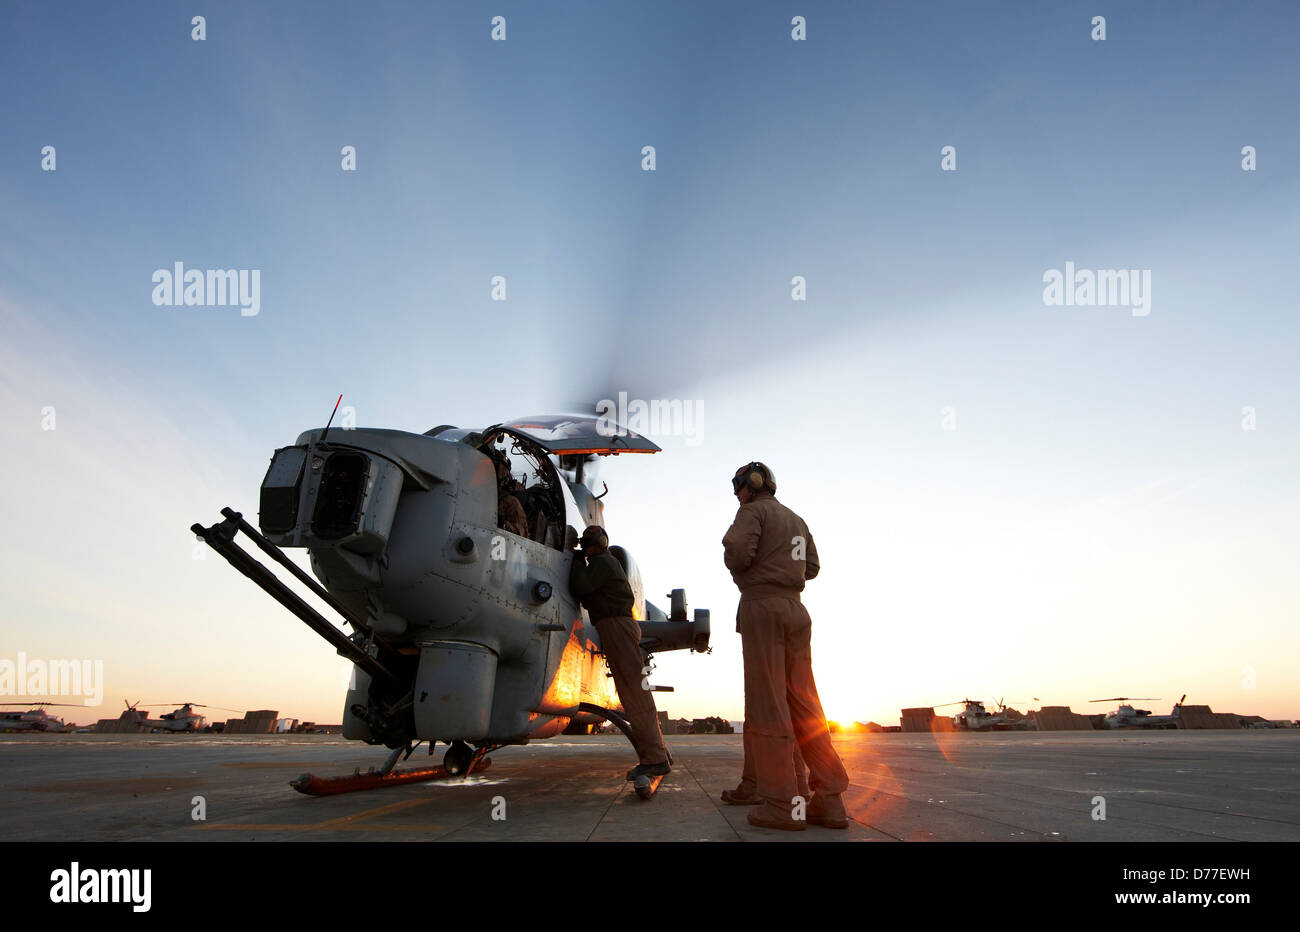 United States Marine Corps aviators ground crew prepare to launch AH-1W SuperCobra attack helicopter on combat operation - Stock Image